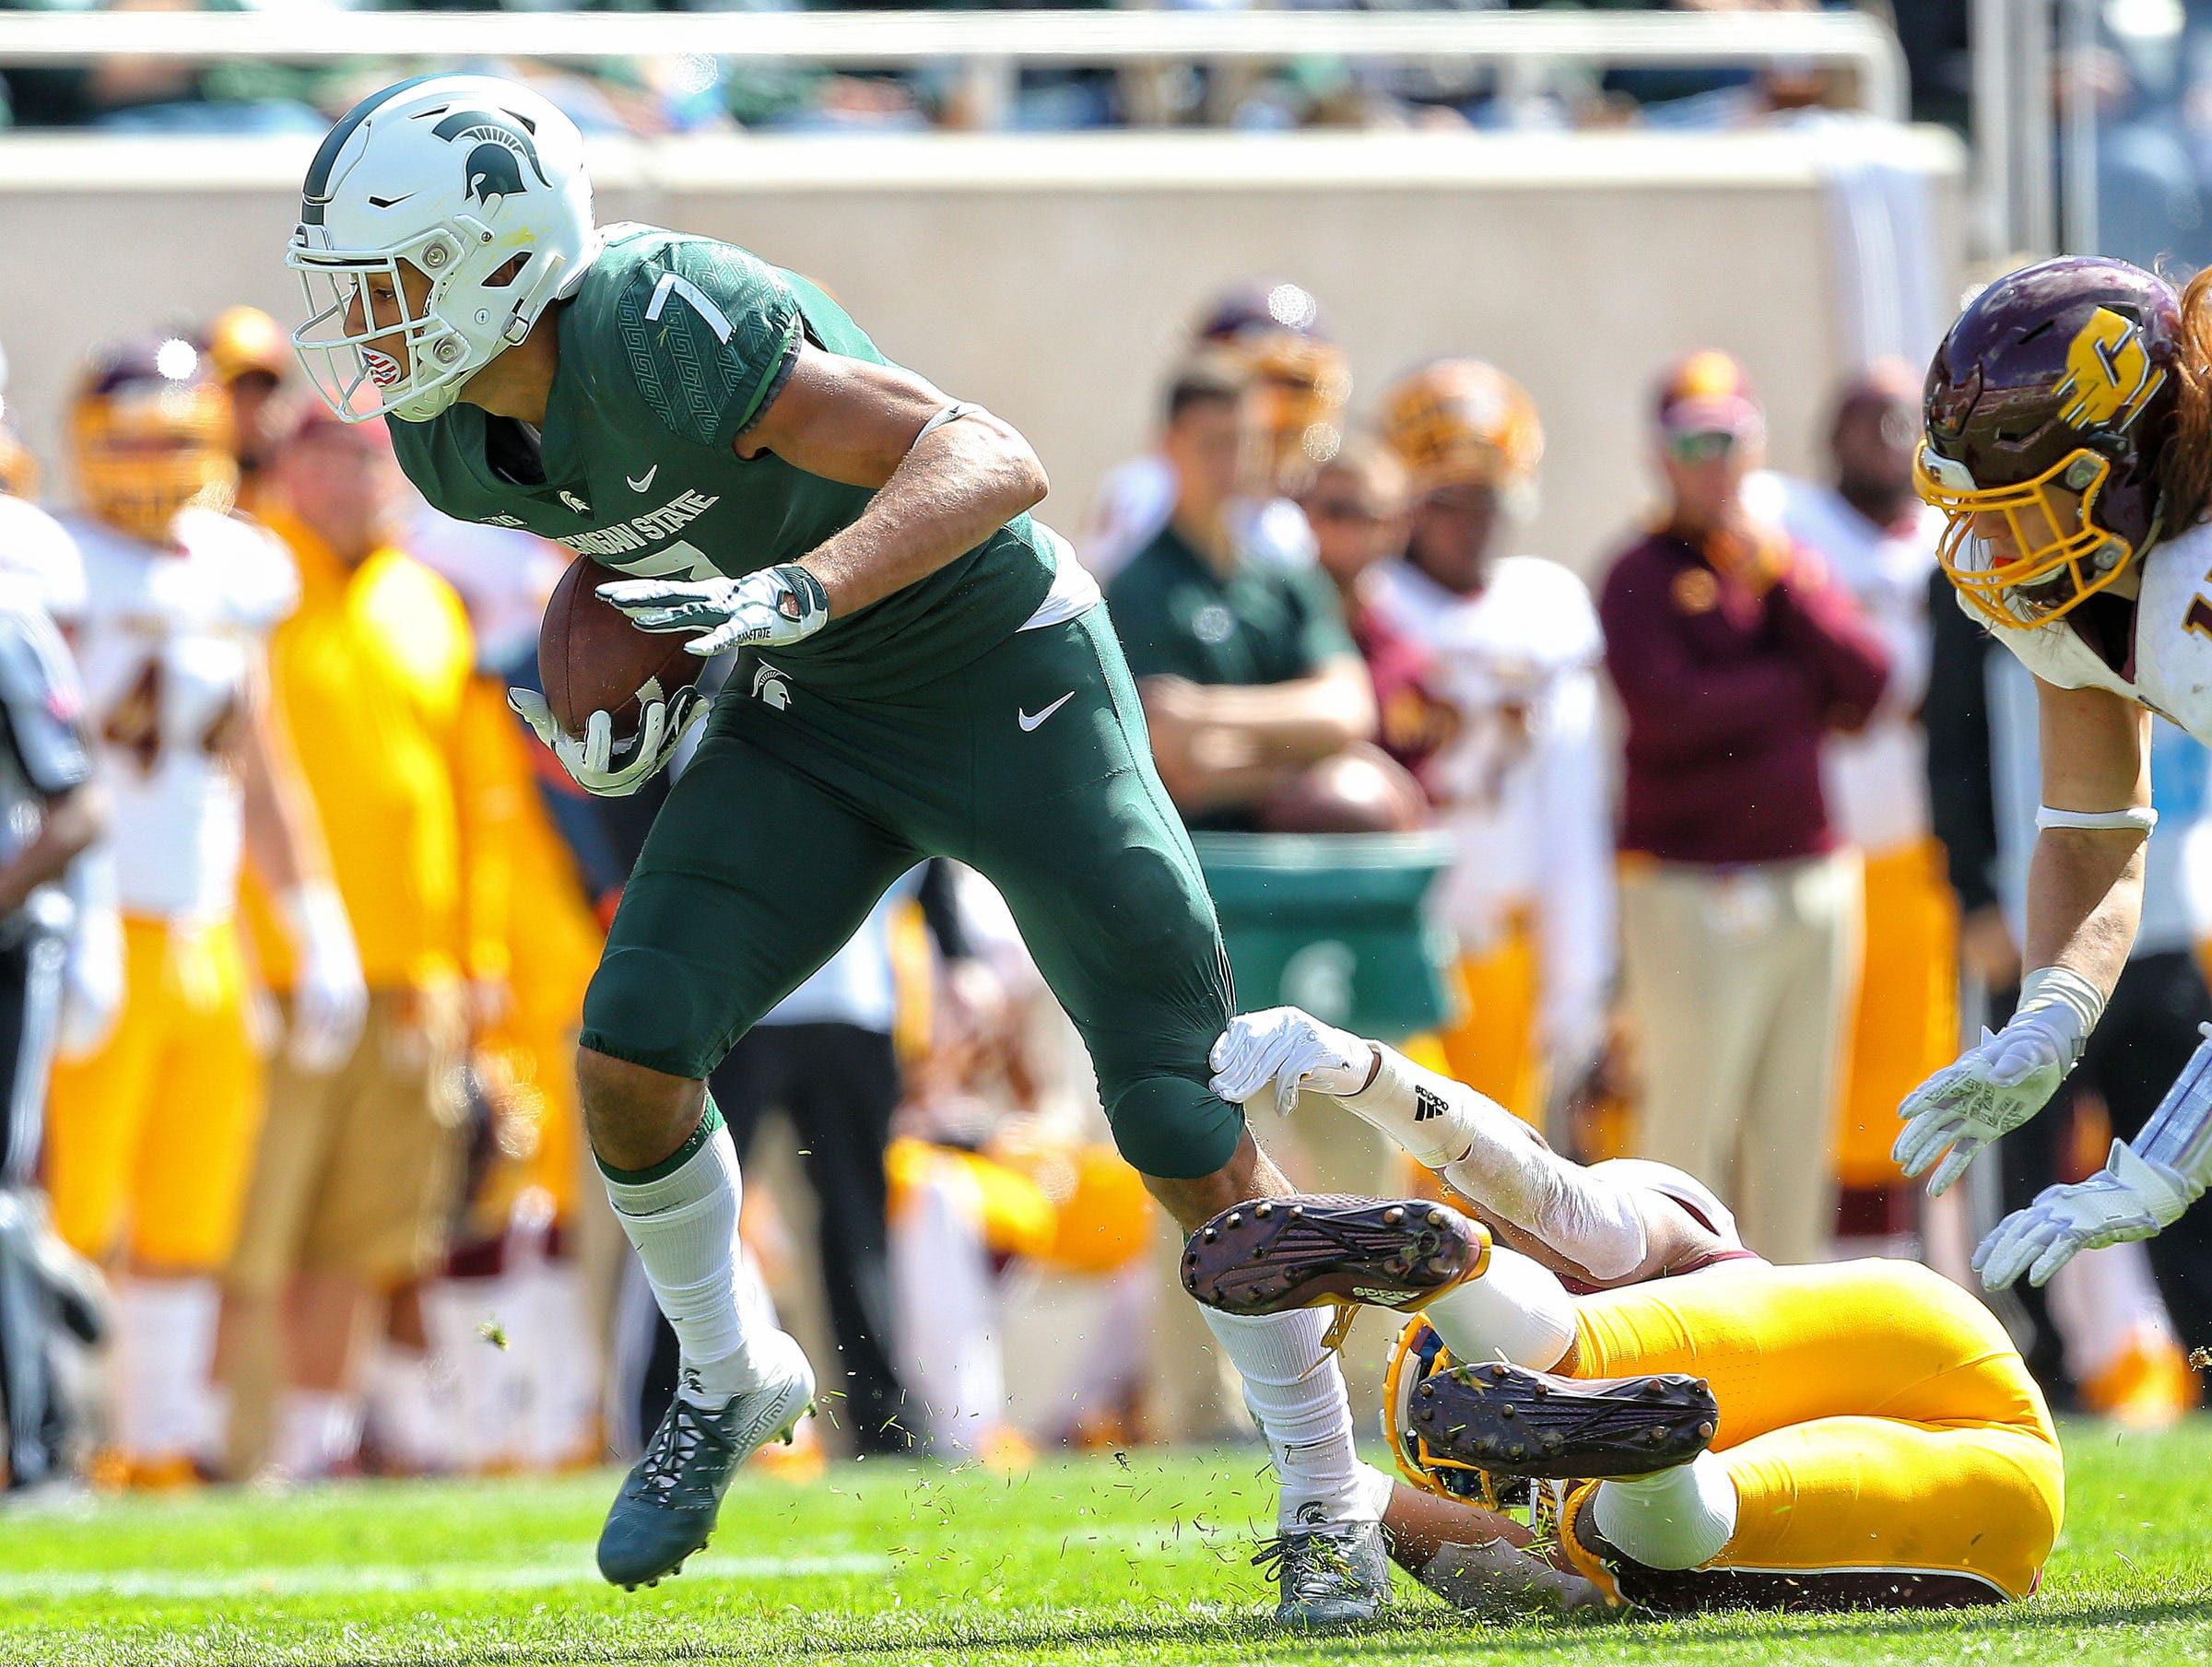 Michigan State wide receiver Cody White breaks a tackle against Central Michigan during the first half on Saturday, Sept. 29, 2018, at Spartan Stadium.